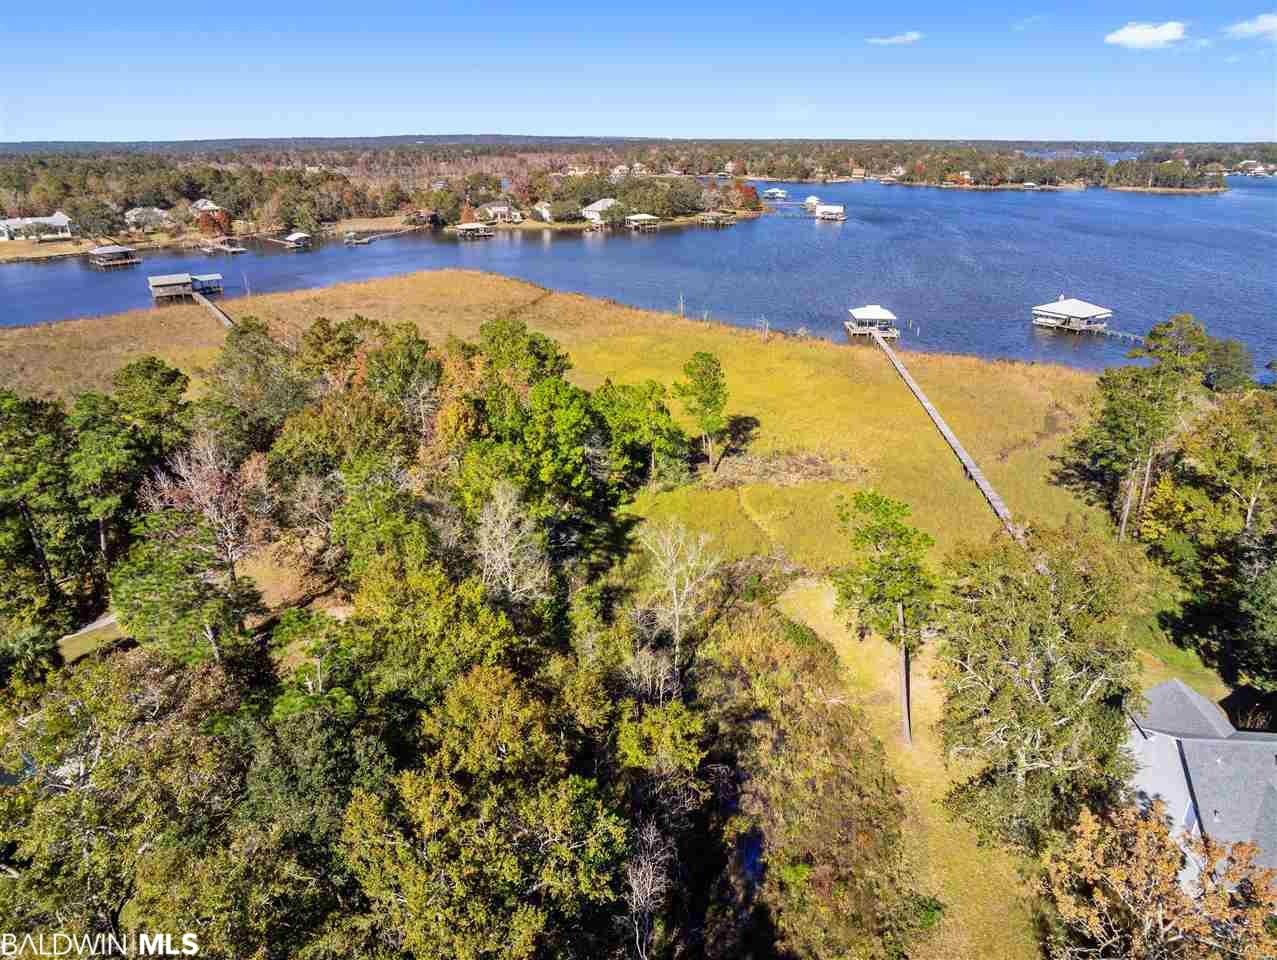 Get Ready to Build Your Very Own Waterfront Dream Home!  This great piece of property located on Dog River features 122 feet of breathtaking river frontage.  With approximately 2.5 acres you can build the home of your dreams.  This beautiful property boasts beautifully stated trees and is desirably located on a secluded private street with covenants.  Don't miss out on this great opportunity!  All measurements are approximate but not guaranteed, buyer to verify.